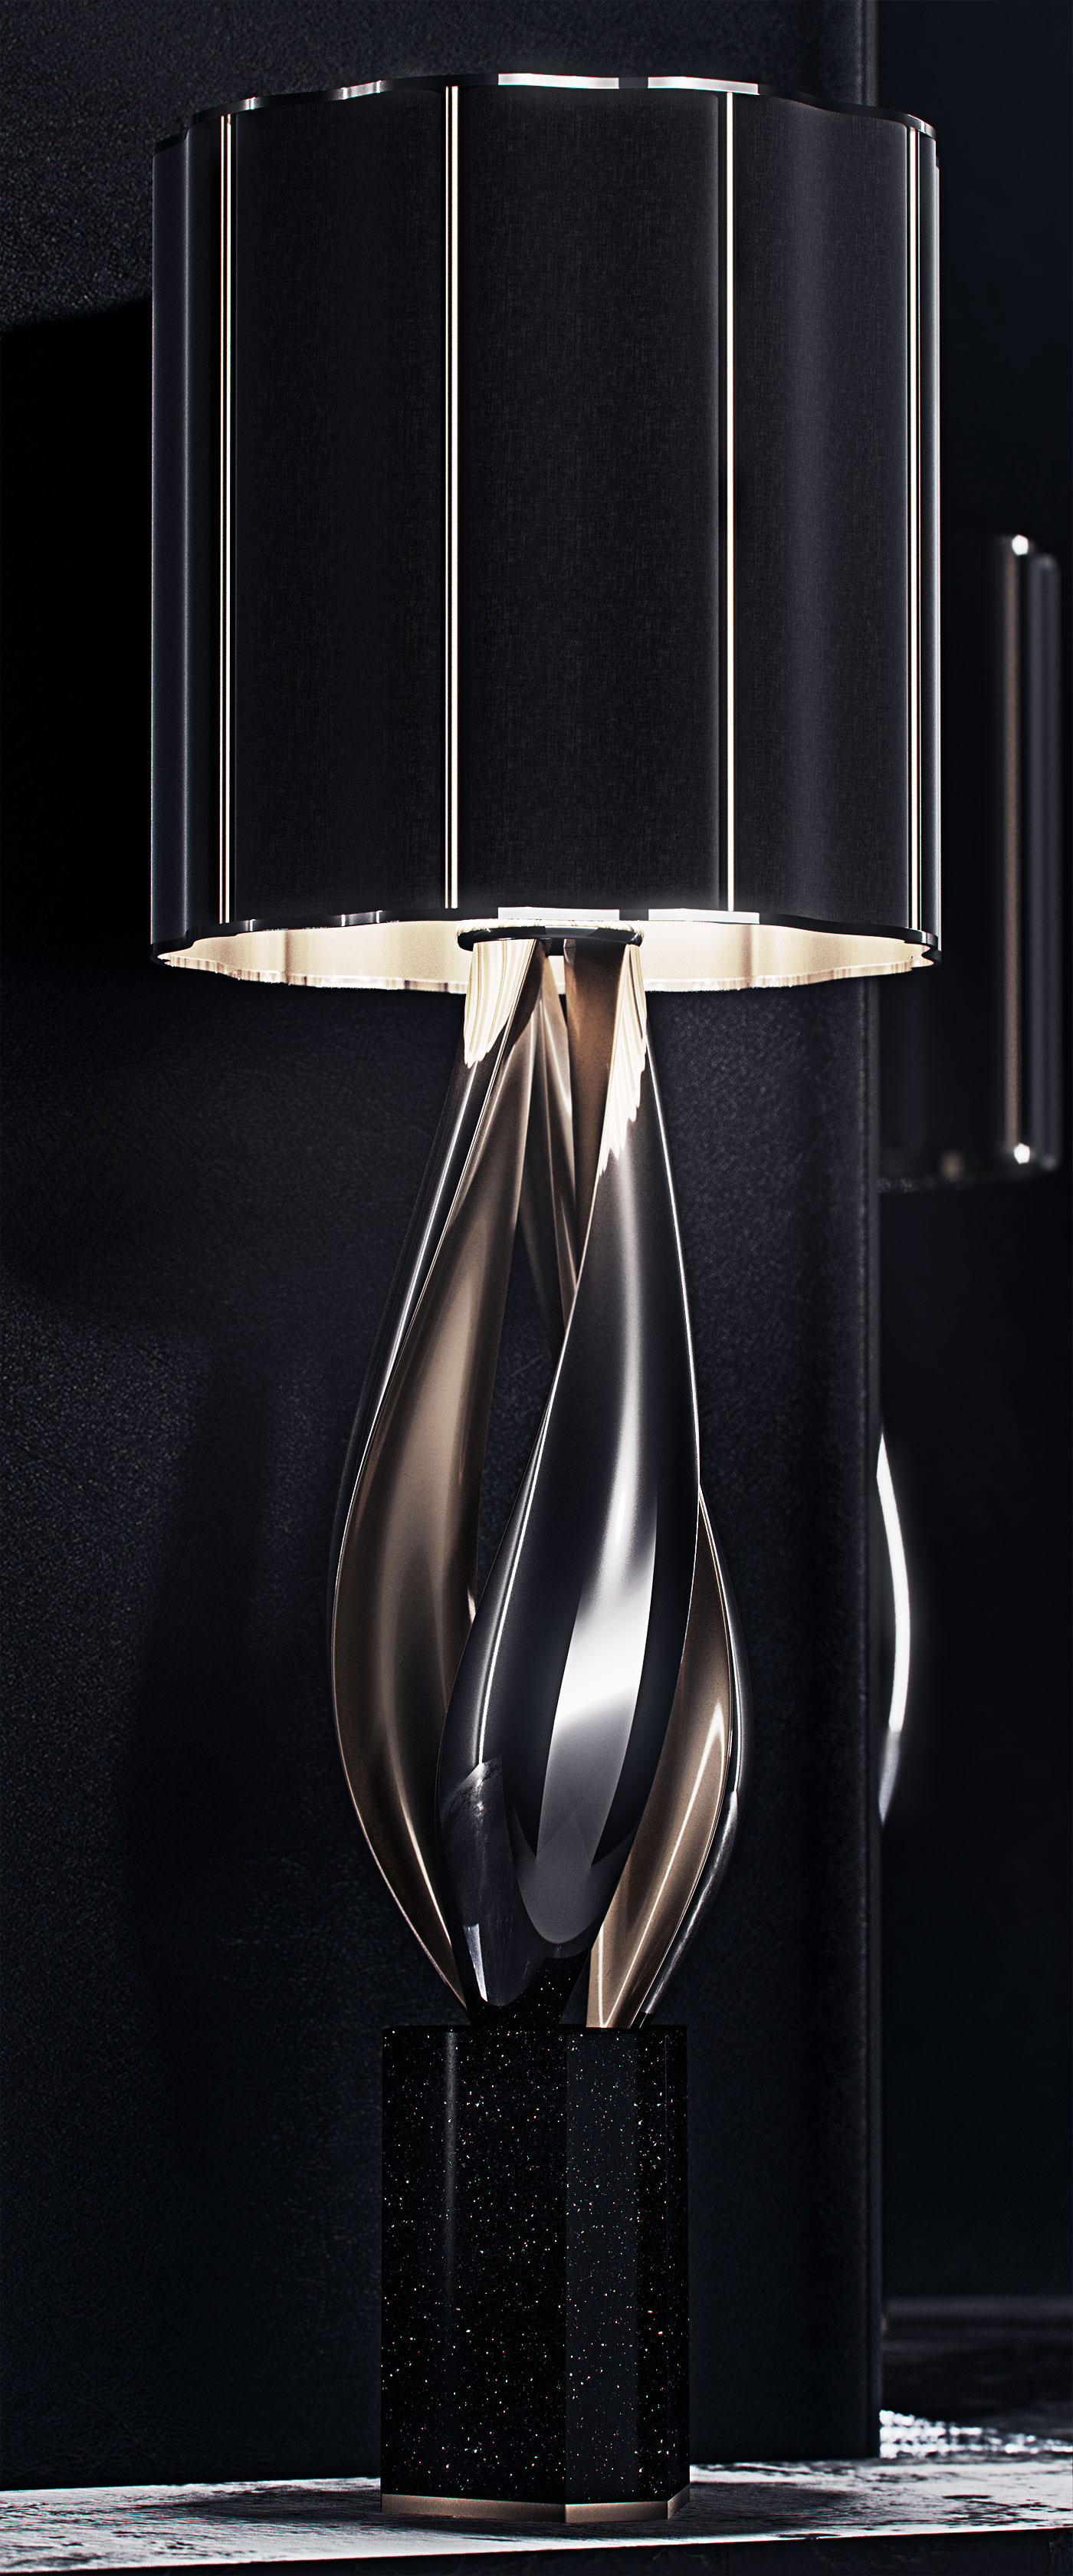 luxury lighting concept, Nightshade Lamp 2